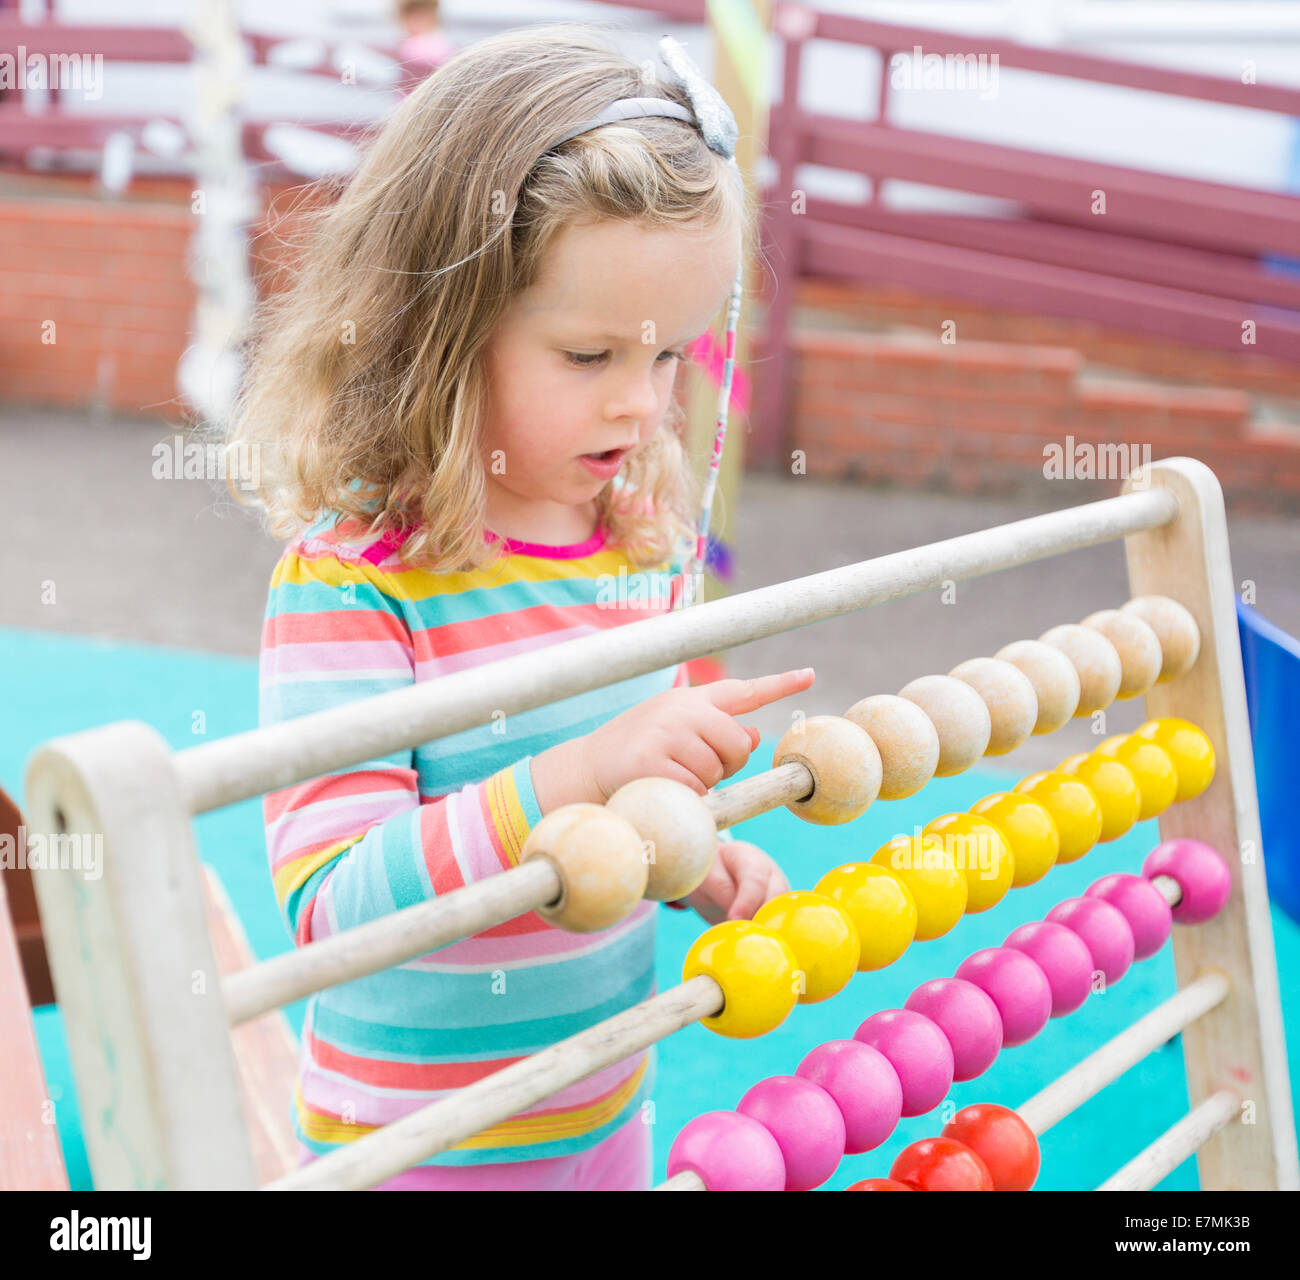 A young girl counting on an abacus at a UK nursery school - Stock Image